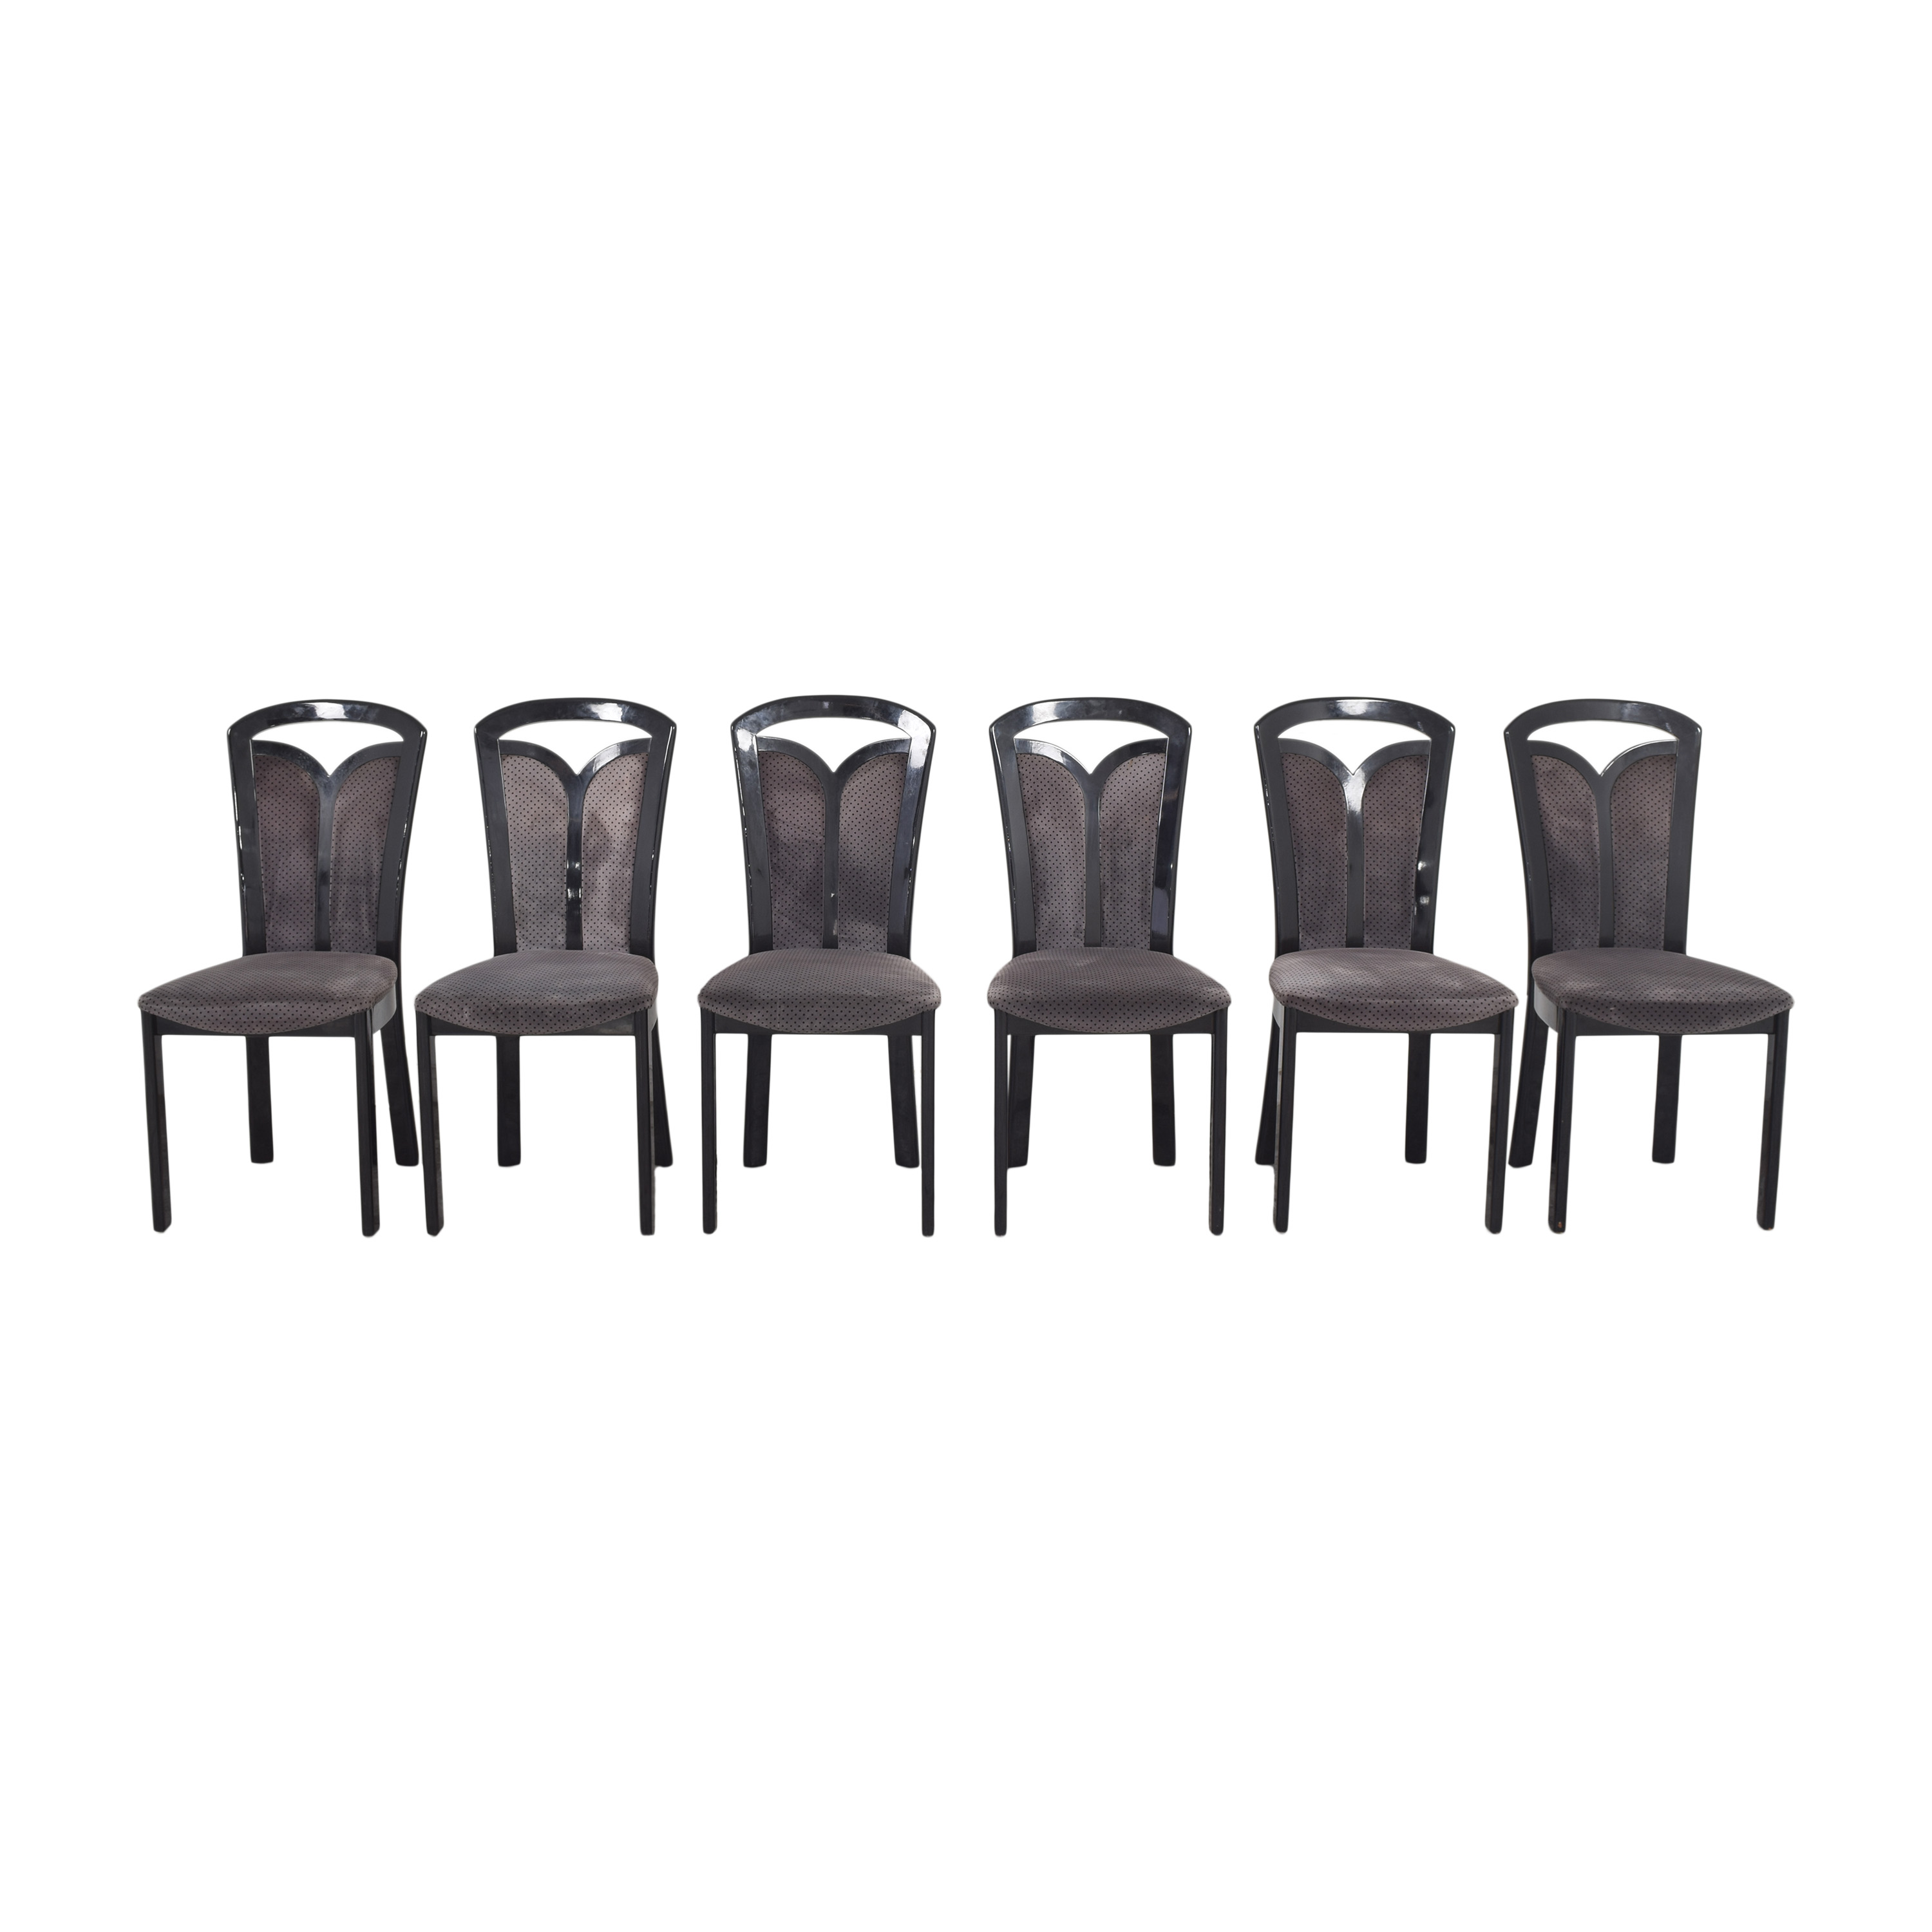 Maurice Villency Maurice Villency High Back Dining Chairs coupon